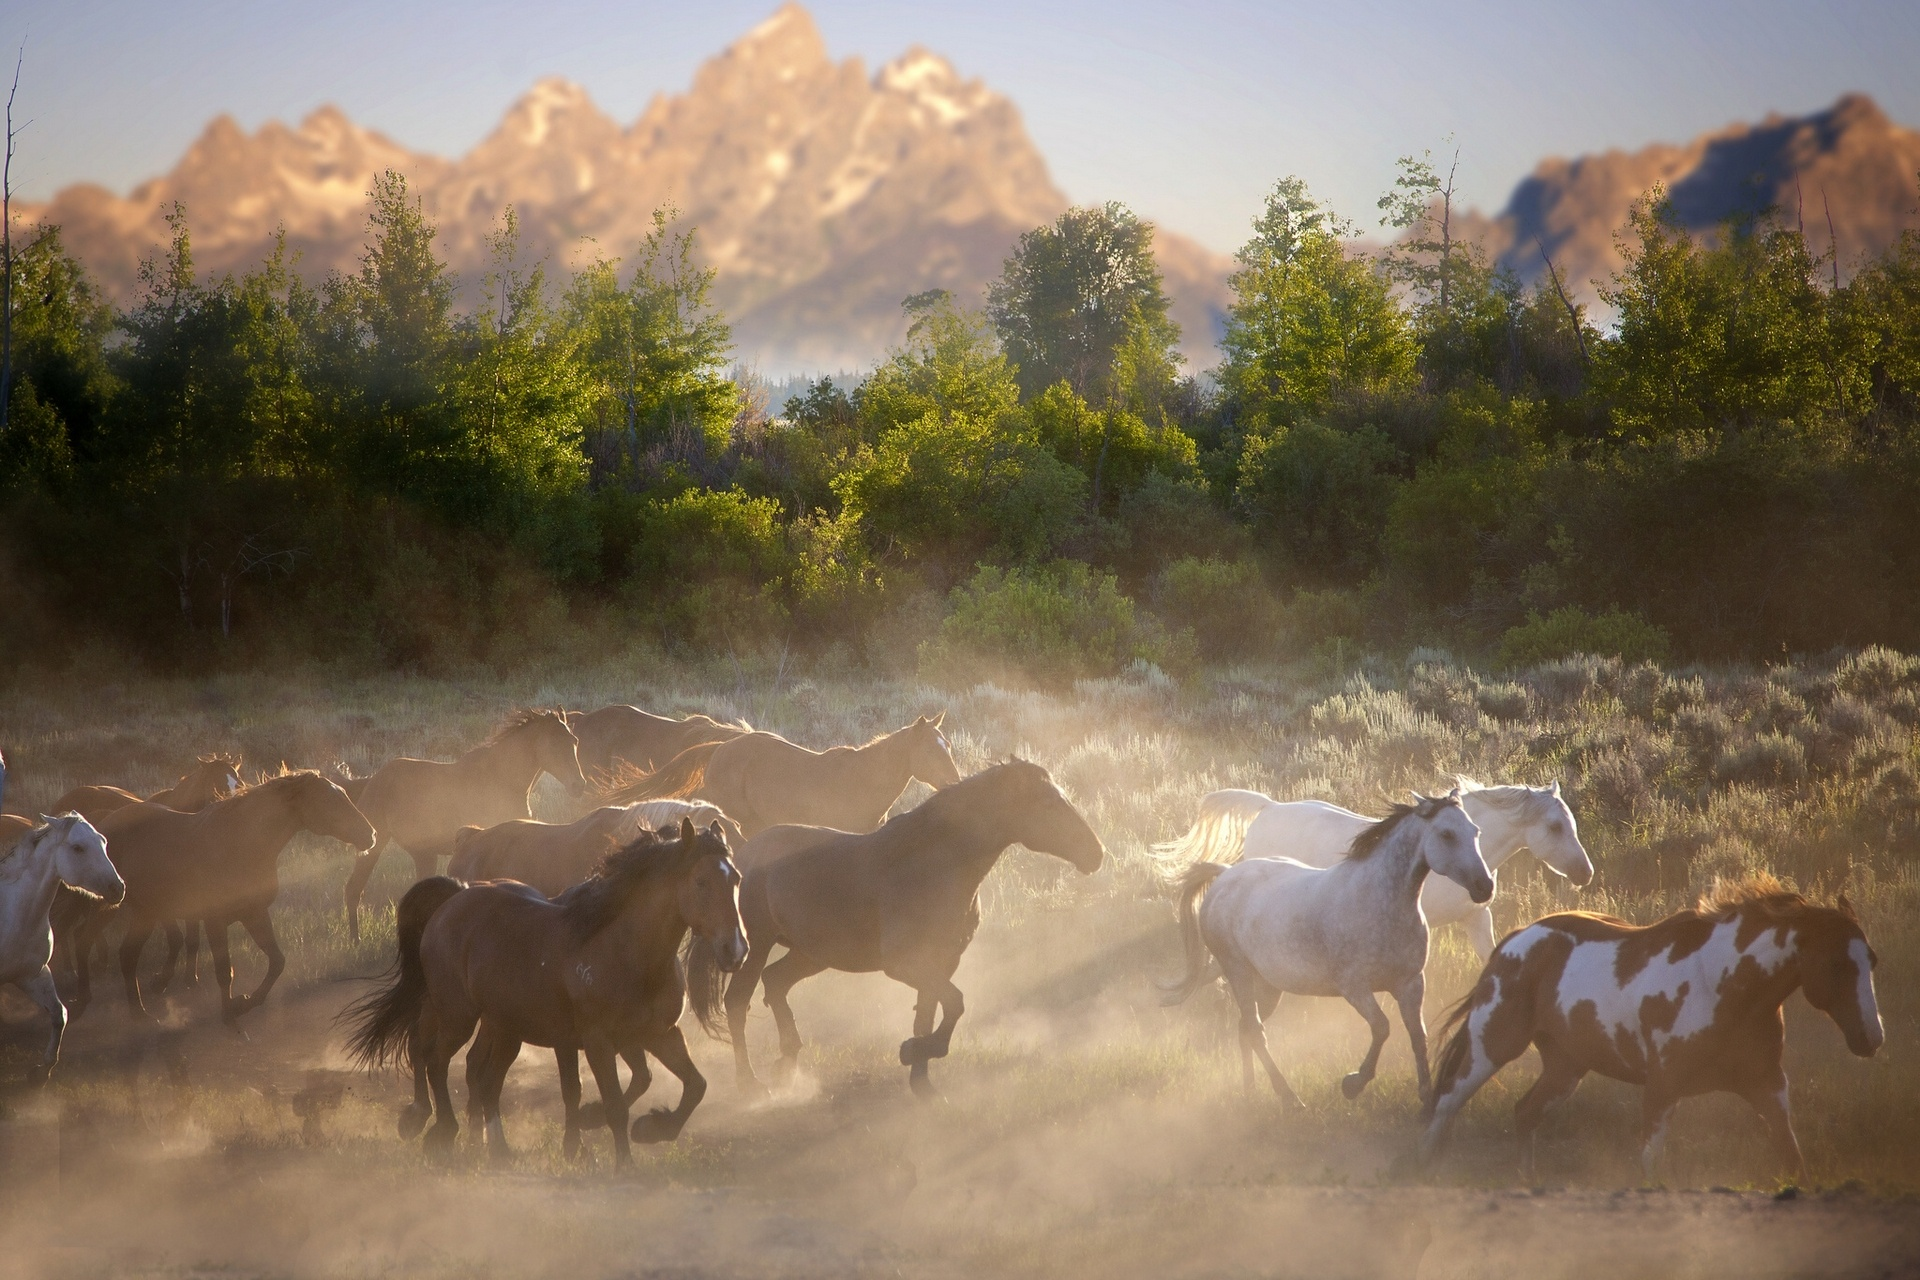 hd wallpapers of running horses